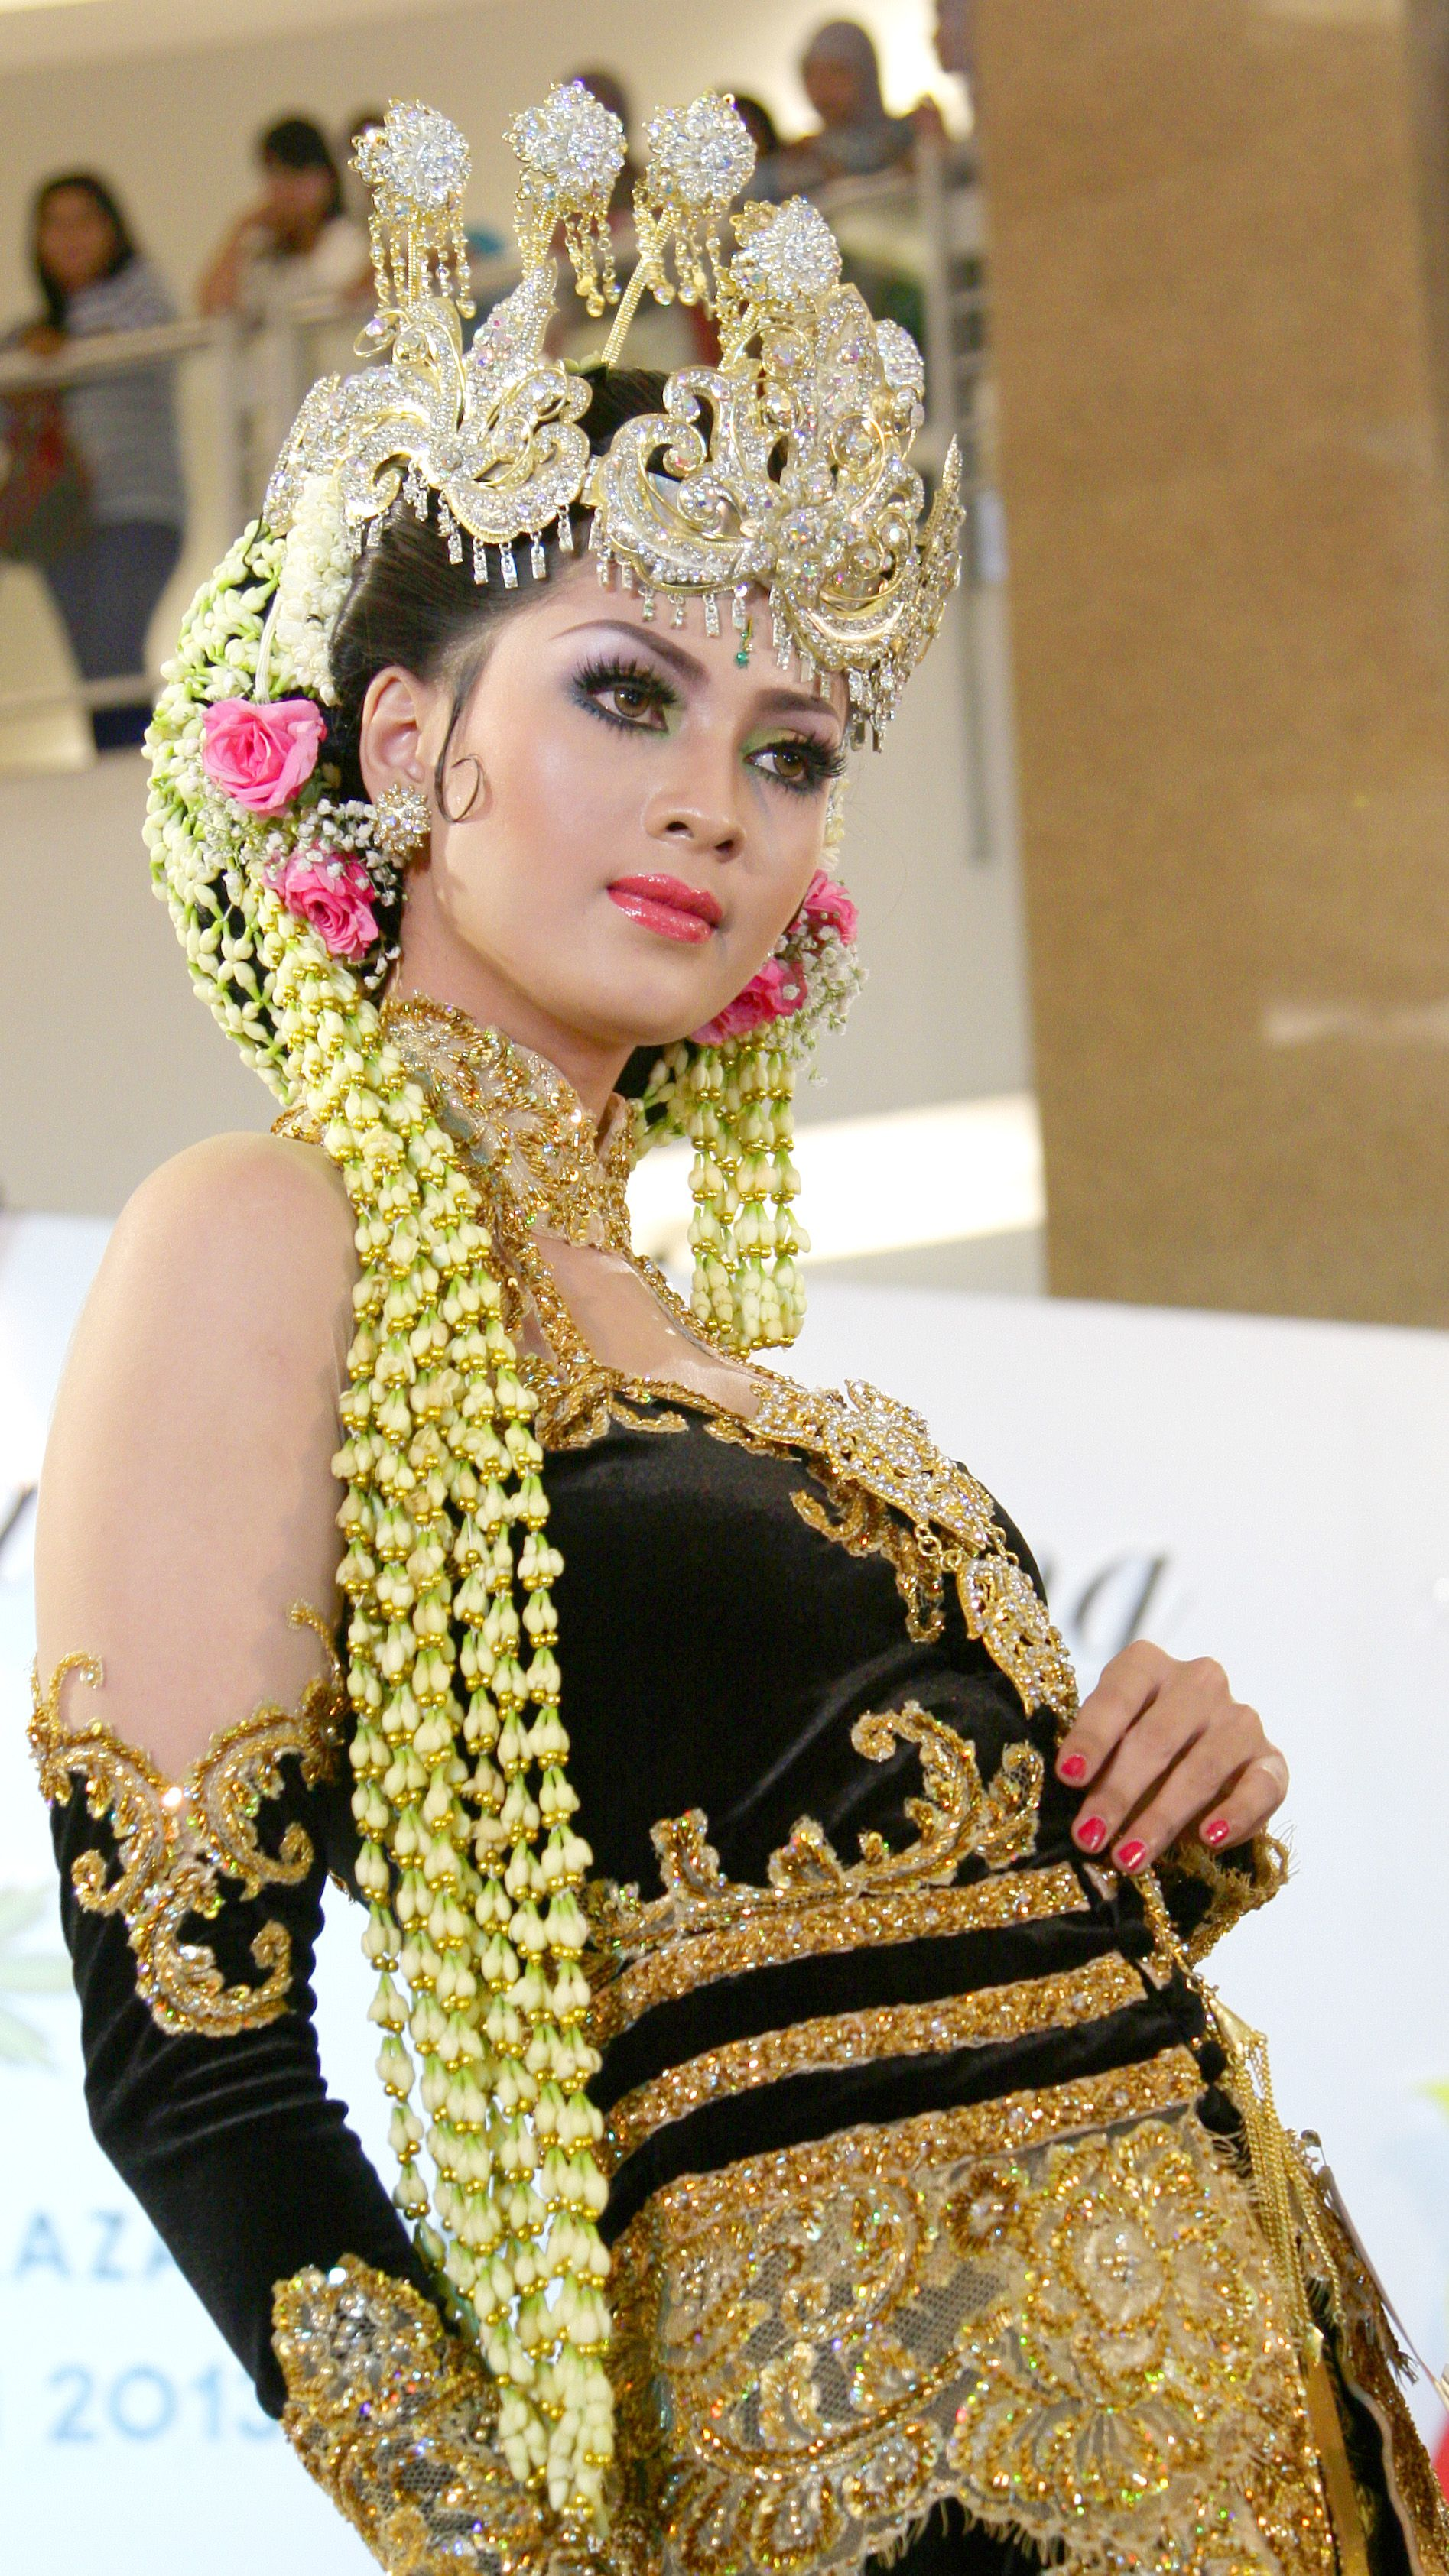 Javanese traditional bride gown taken during traditional wedding festival in surabaya june 6 9 2013